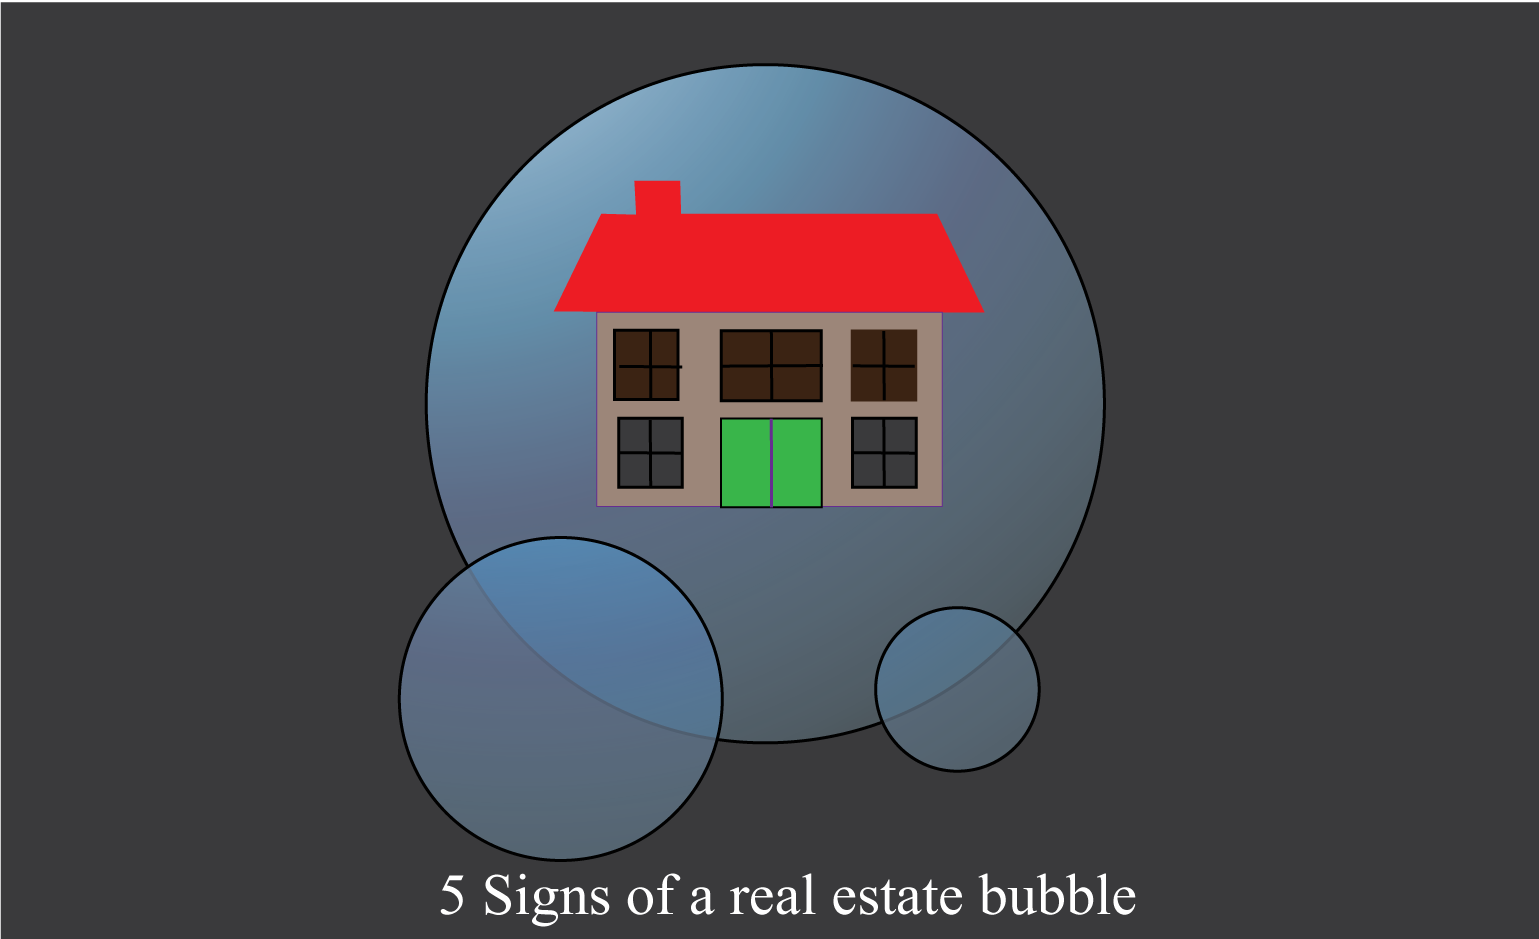 DC Fawcett's Signs of a real estate bubble